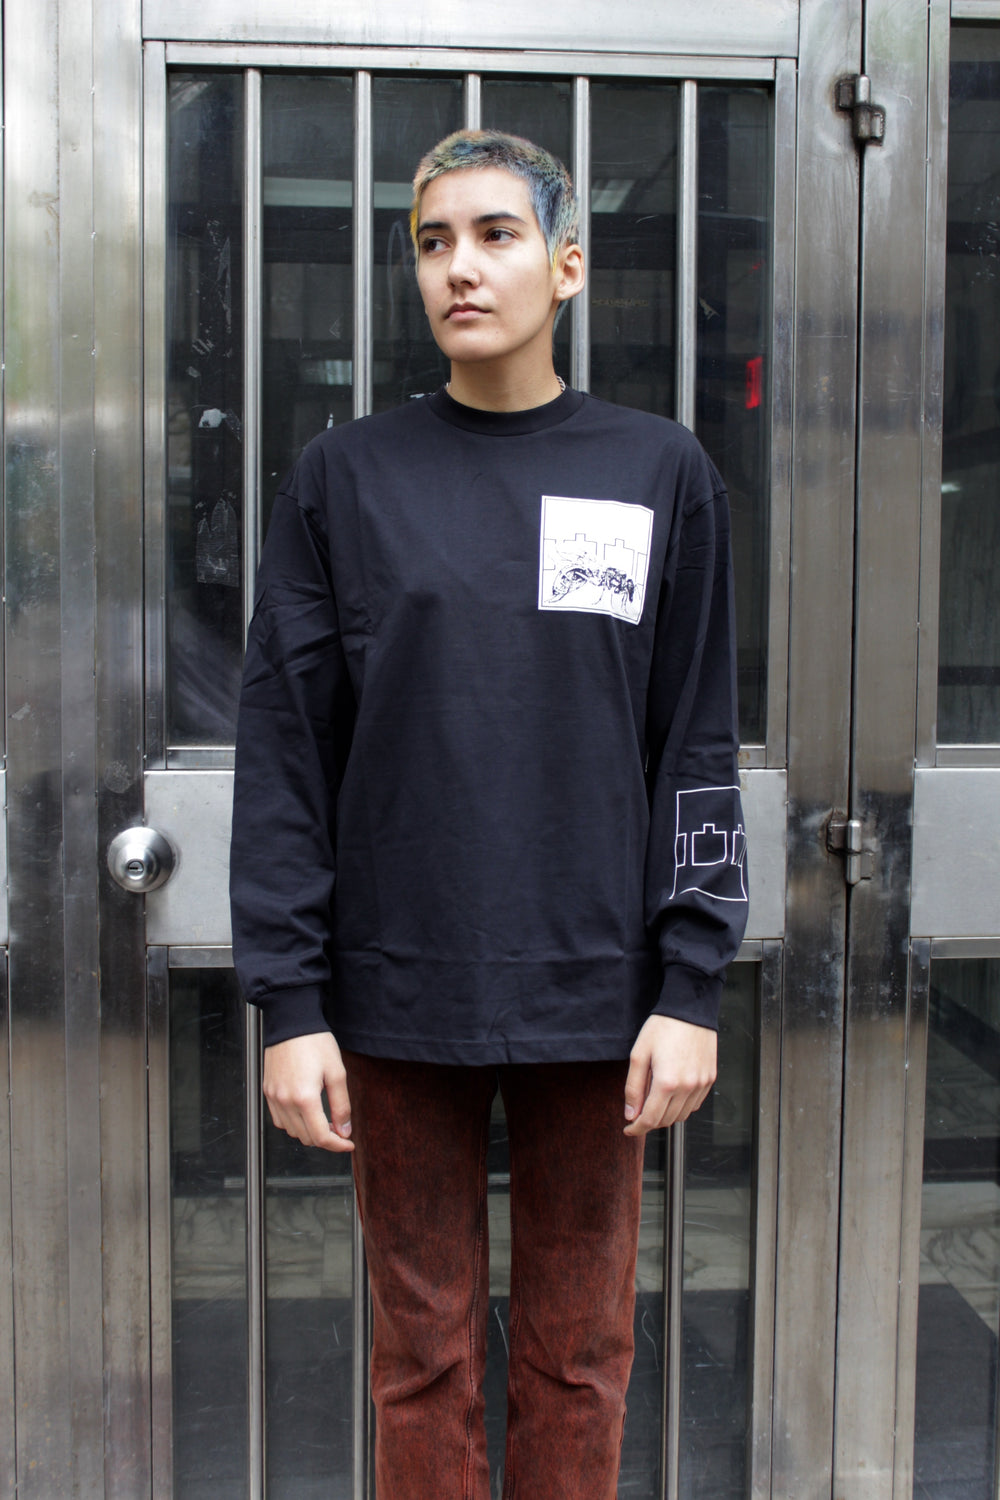 The Trilogy Tapes 'Fly' Longsleeve T-shirt